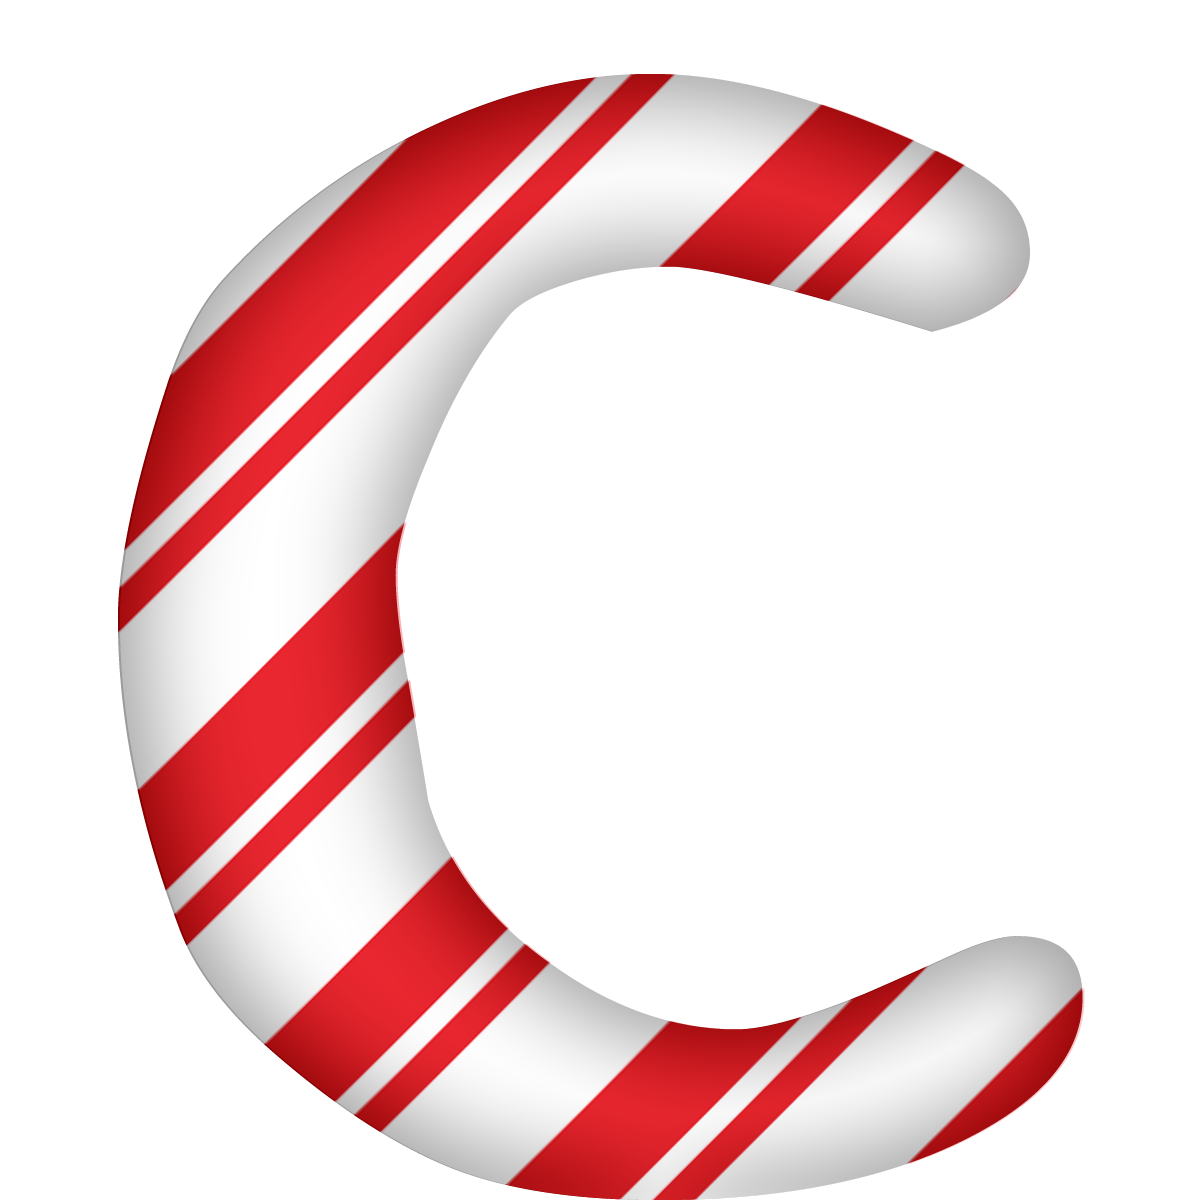 Fancy letters png. Letter c images free